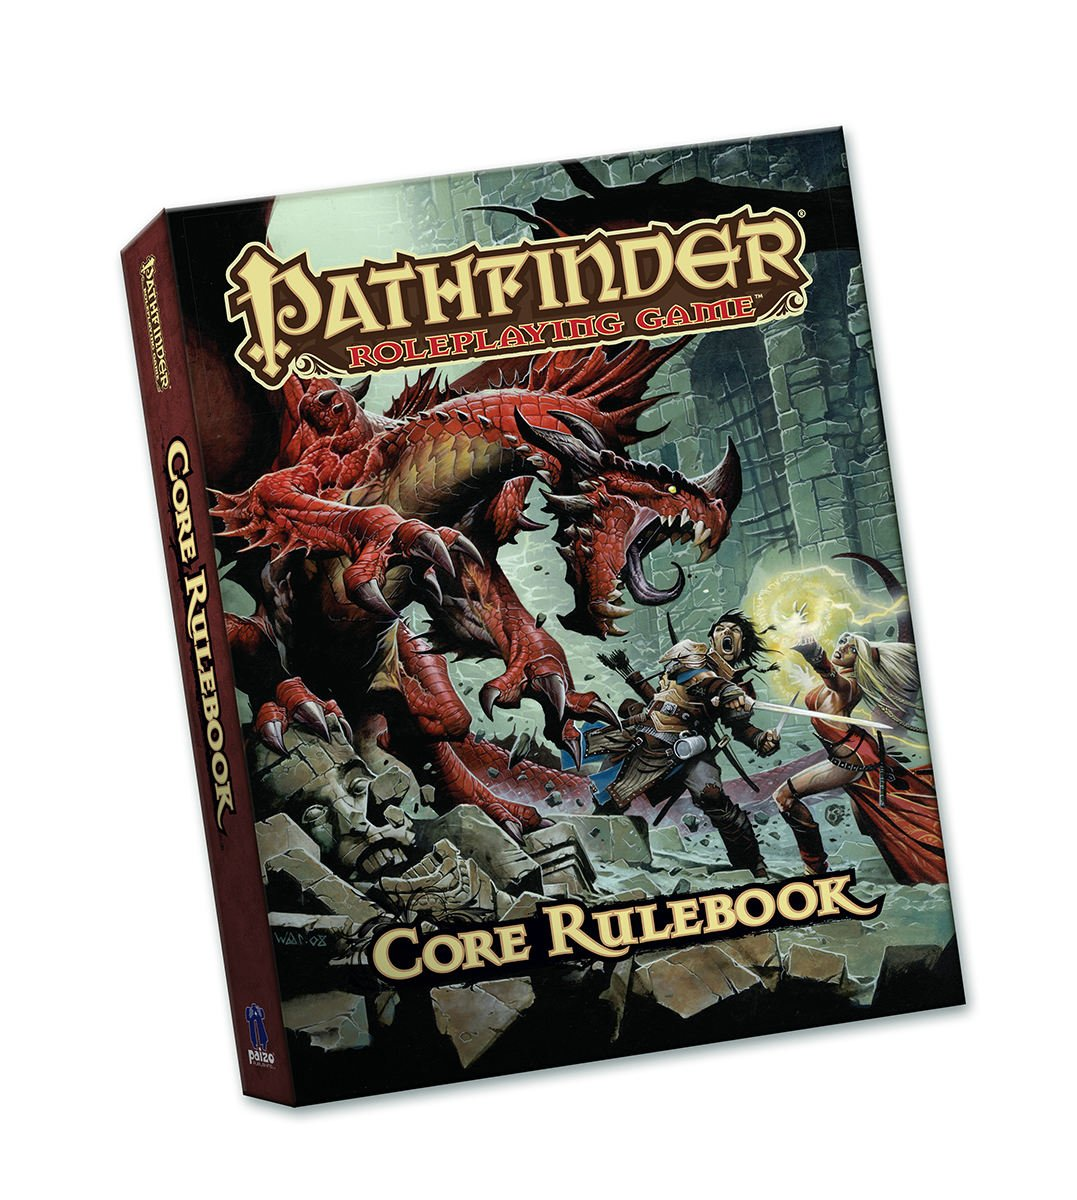 Pathfinder Role Playing Game: Core Rulebook (Pocket Edition) - Used